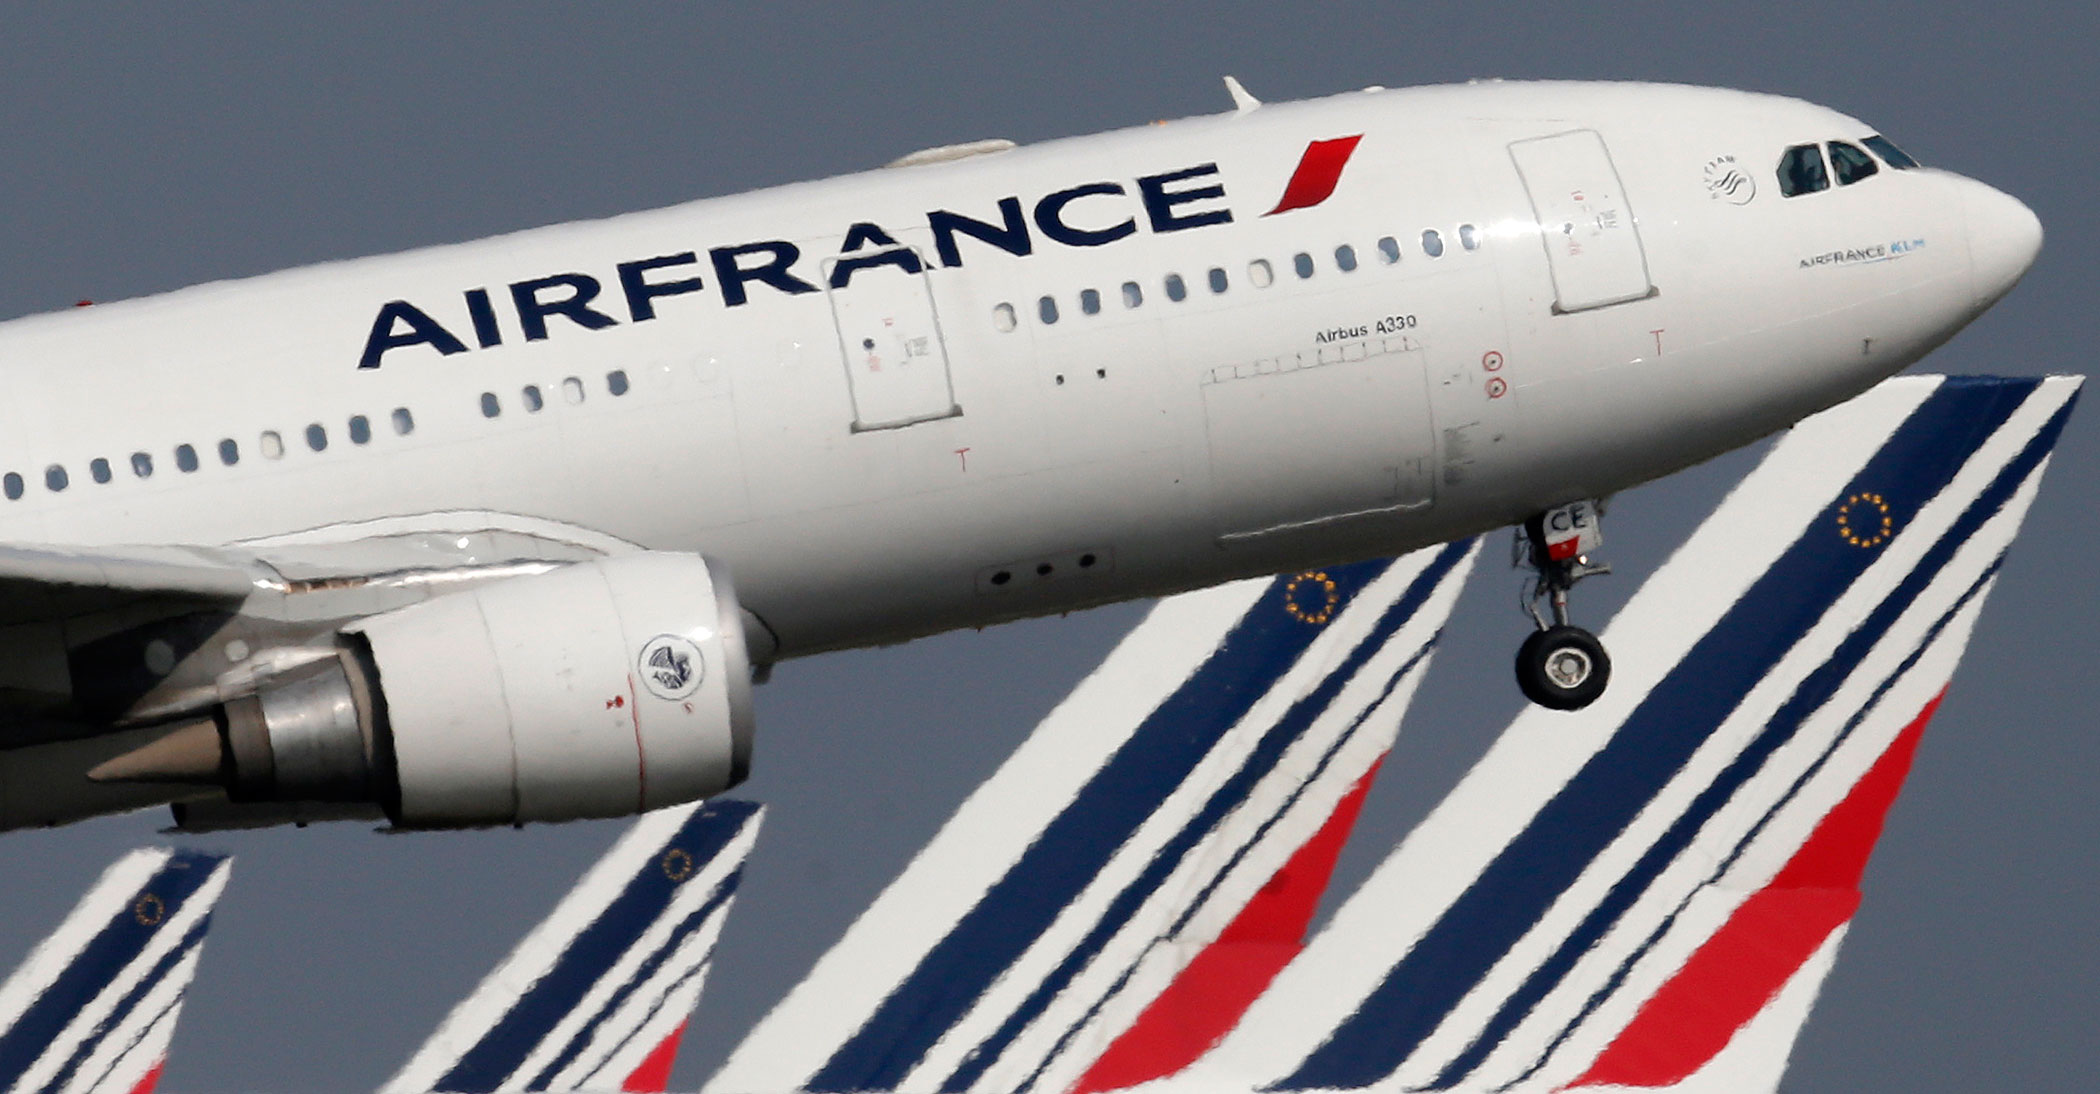 An Air France aircraft takes off at Charles de Gaulle Airport, near Paris, on Sept. 14, 2014